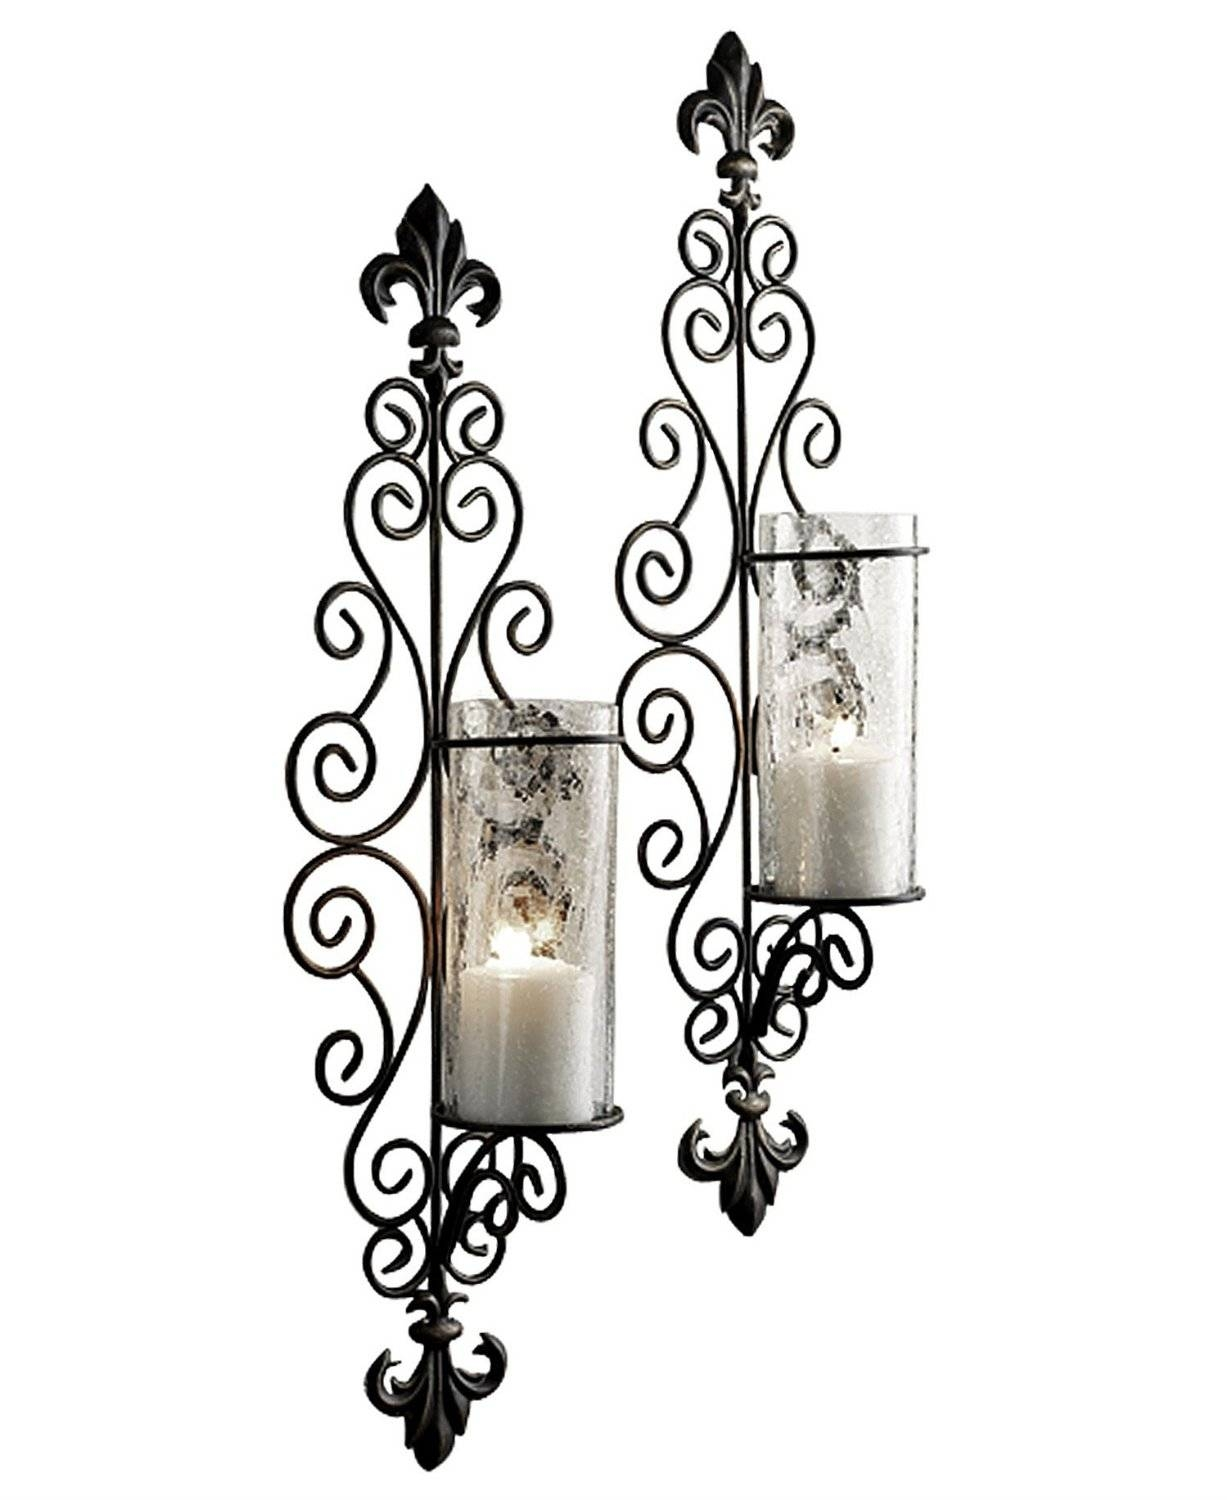 Iron Scroll Wall Decor : Iron Scroll Wall Decor Cafe – Home Decor Regarding 2018 Metal Wall Art With Candle Holders (View 7 of 20)